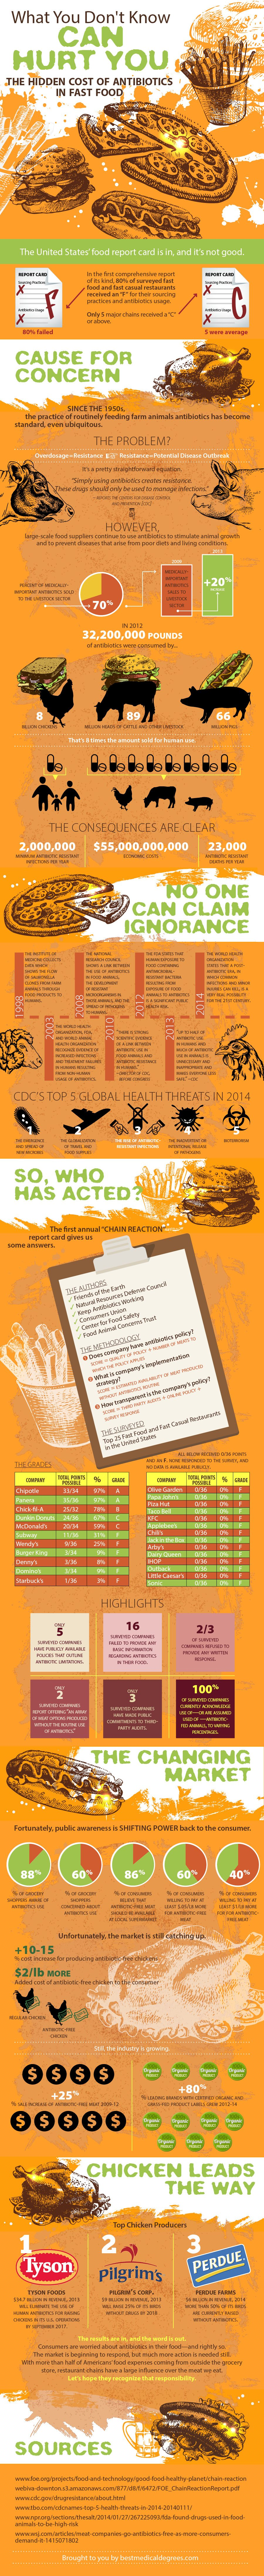 What You Don't Know Can Hurt You (Infographic) | Antibiotics-FastFood | Agriculture & Farming General Health Sleuth Journal Special Interests